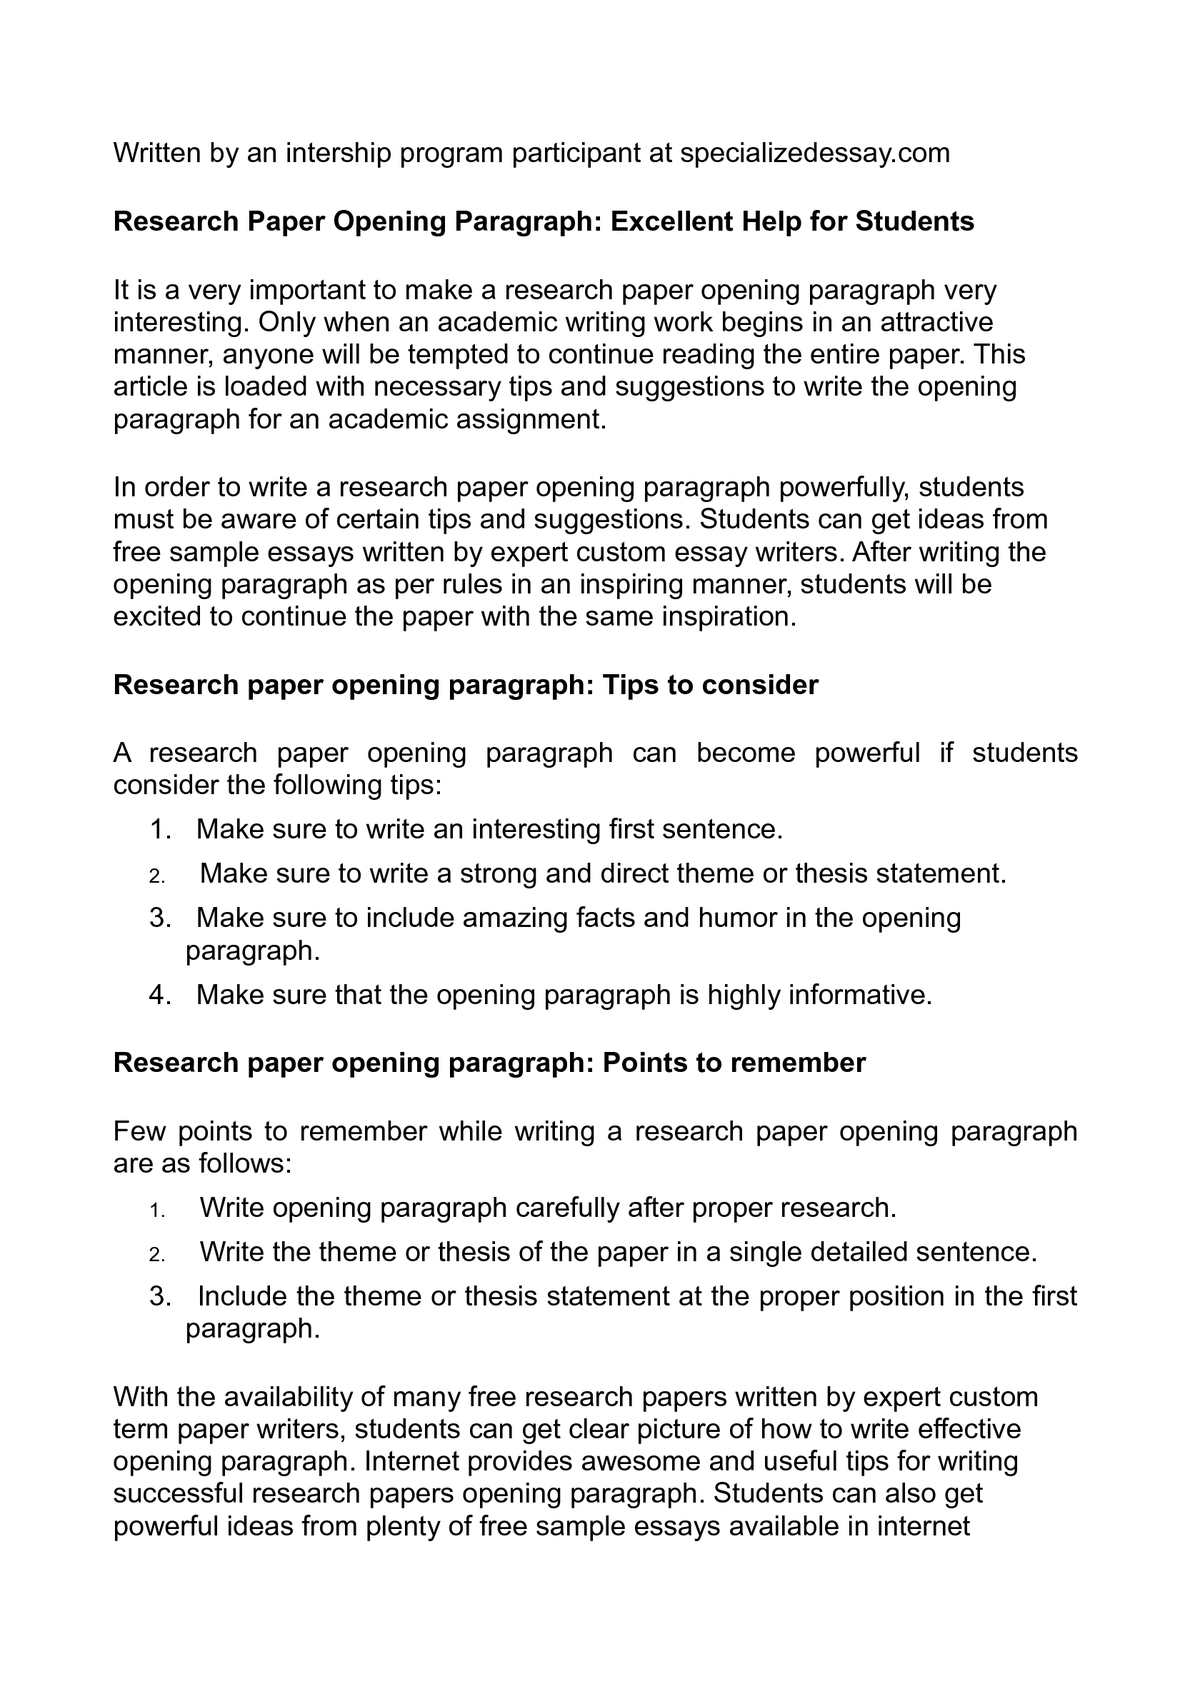 research paper opening paragraph excellent help for  research paper opening paragraph excellent help for students